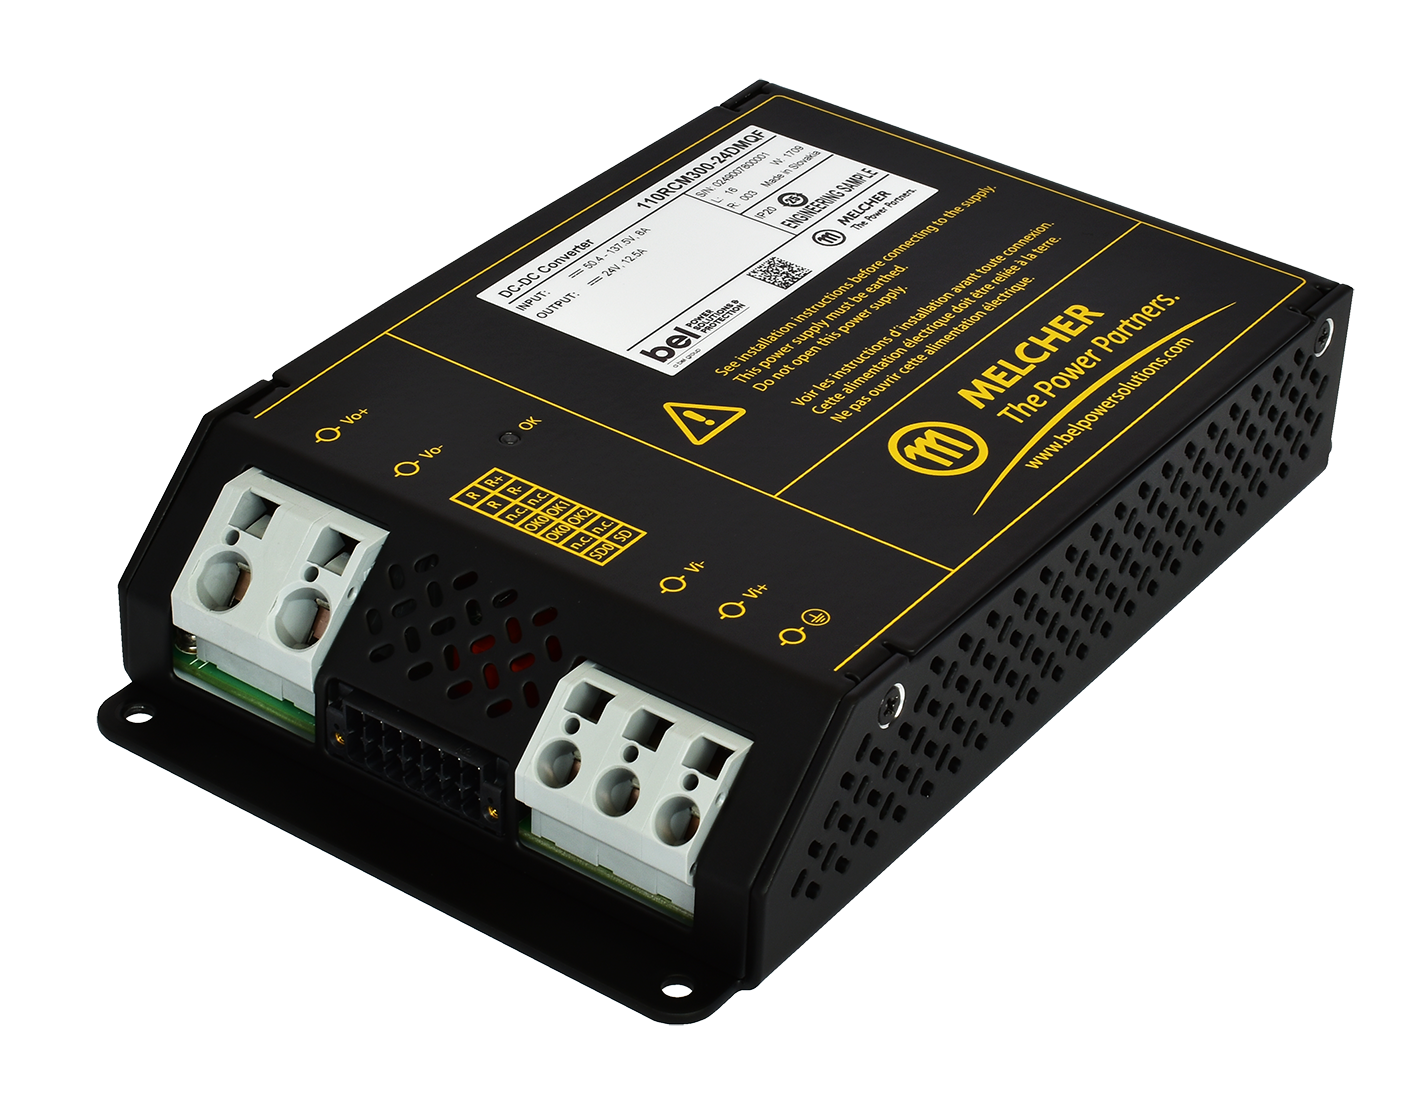 Chassis-Mount 150 W and 300 W DC-DC Converters Intended for Railway Applications